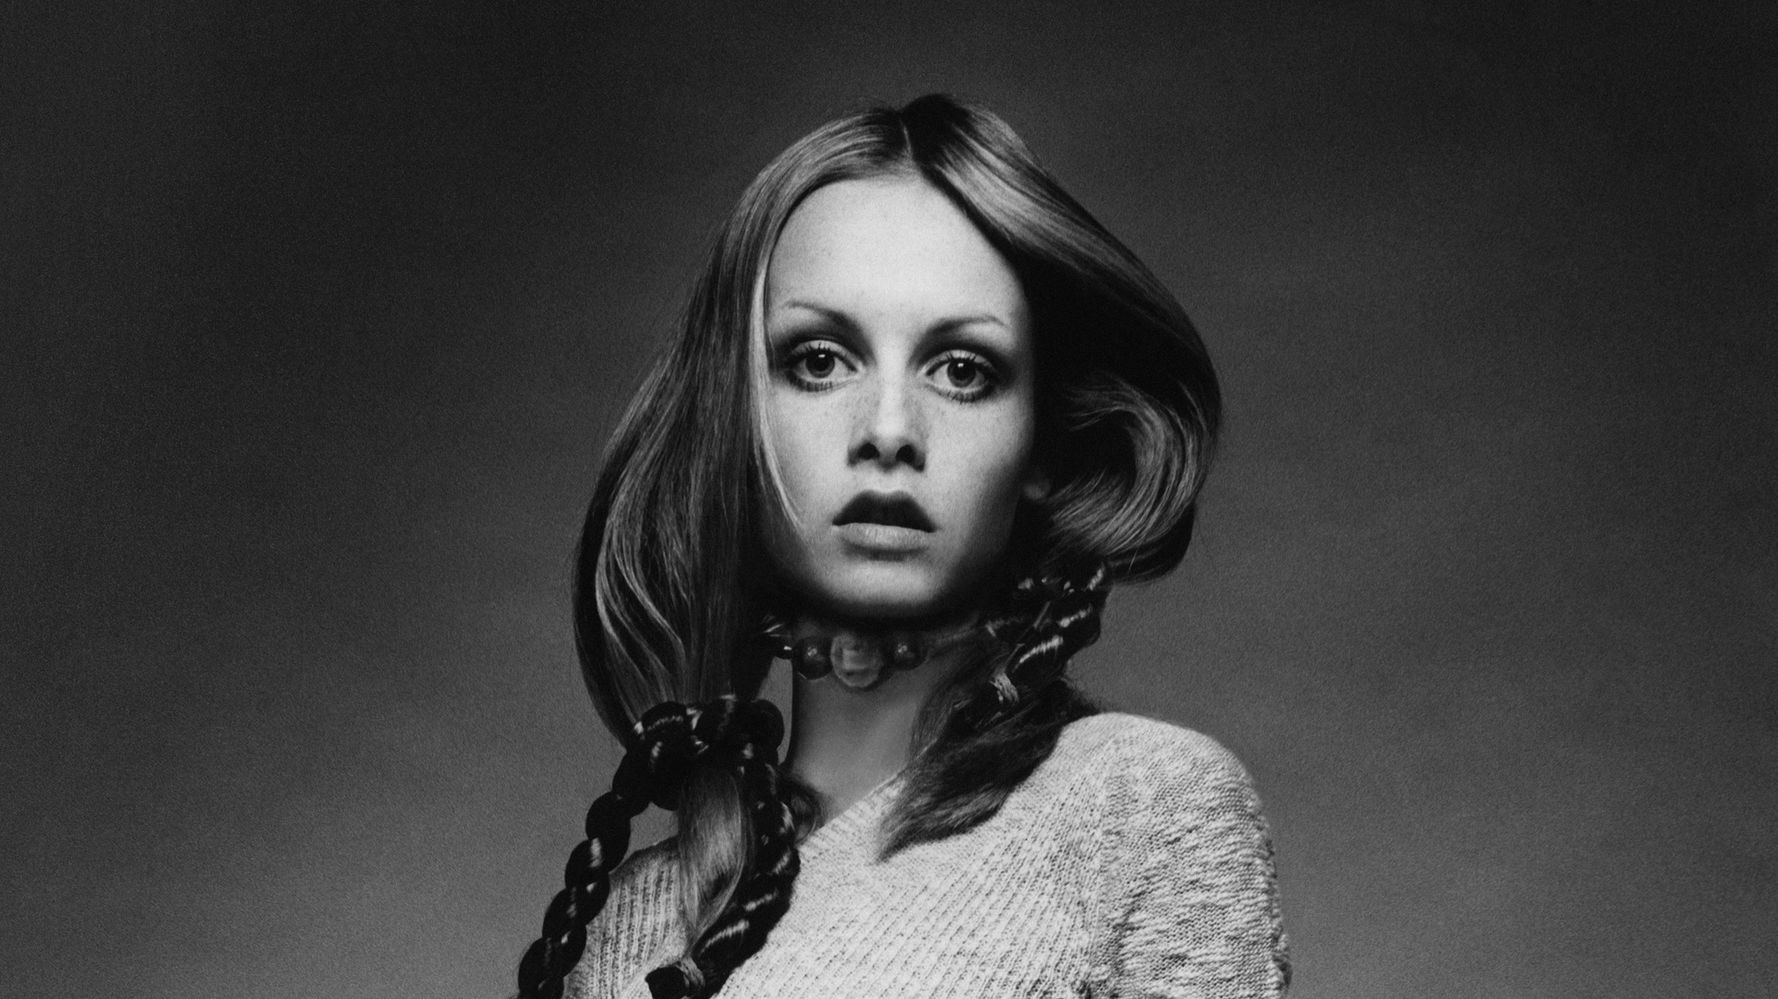 40 Photos Of Twiggy's Style, From '60s Mod To Now ...